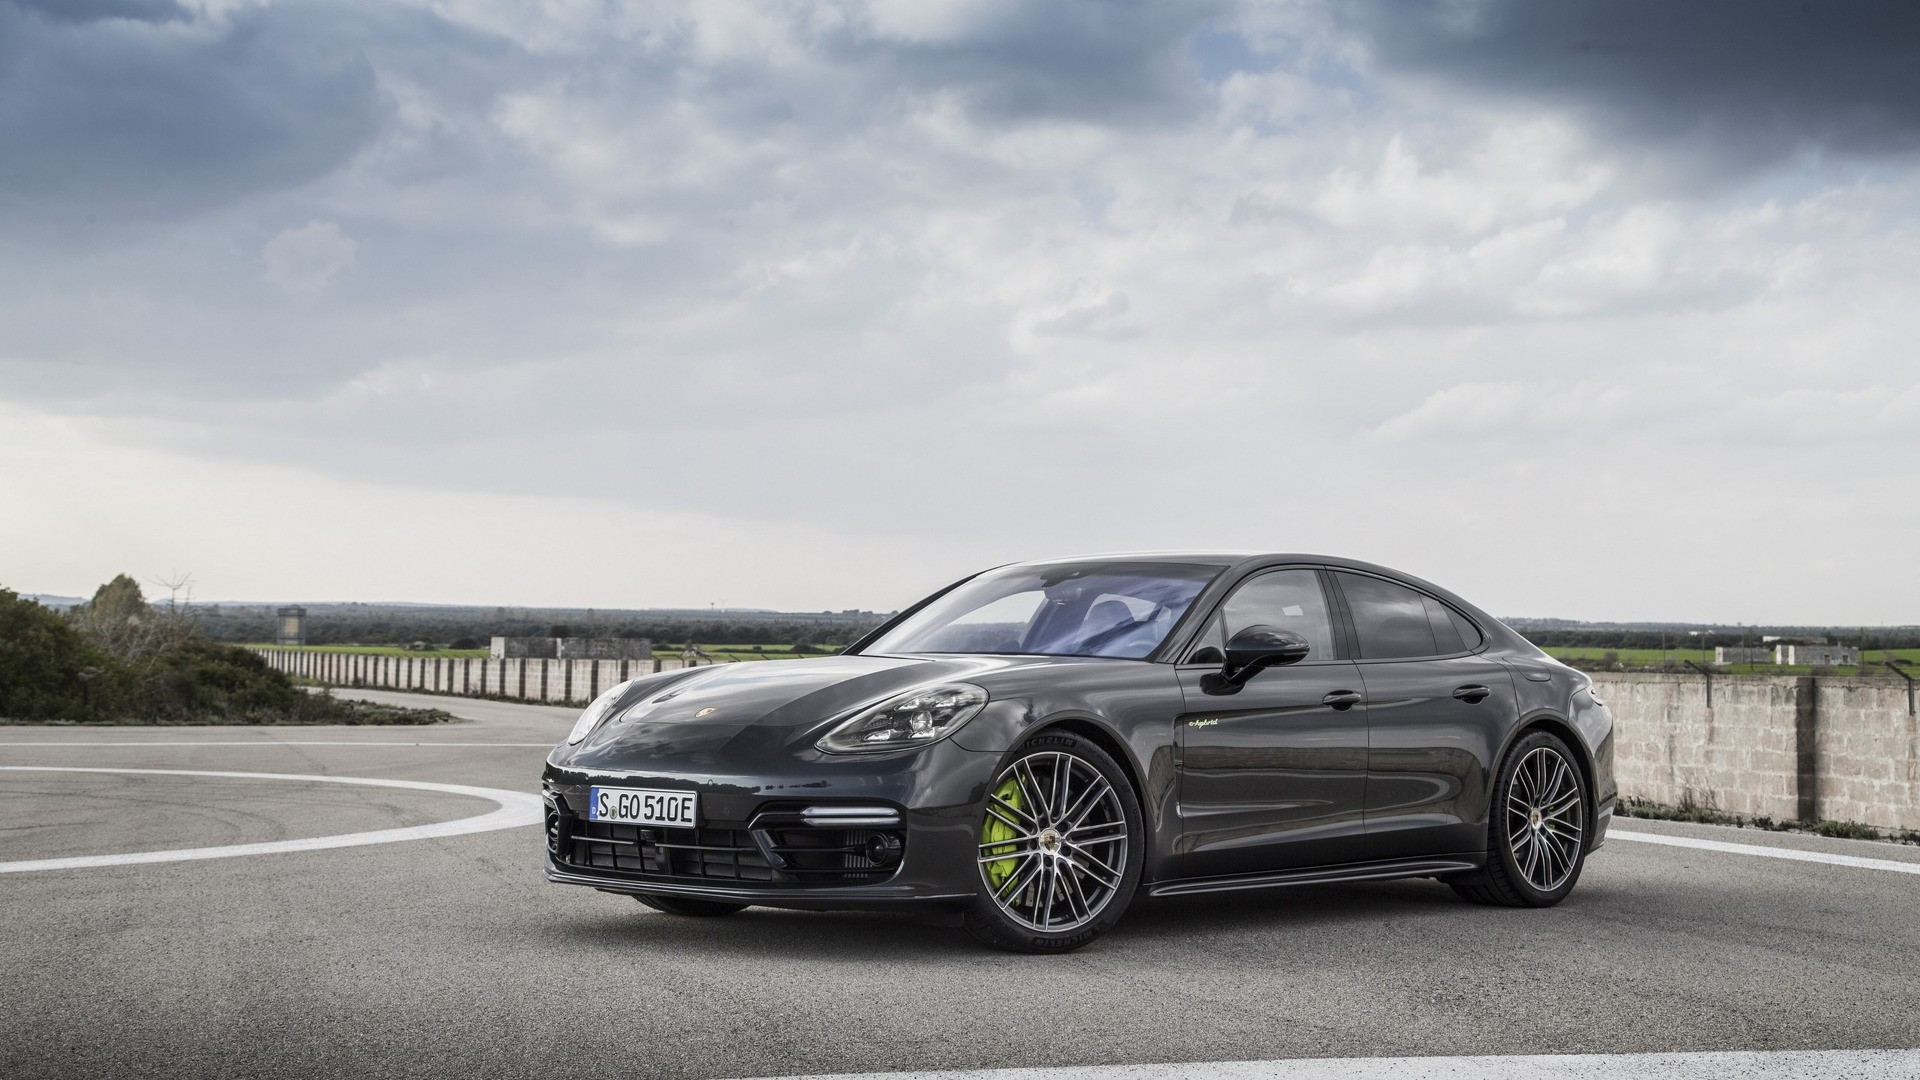 porsche introduces new flagship the panamera turbo s e hybrid autoevolution. Black Bedroom Furniture Sets. Home Design Ideas